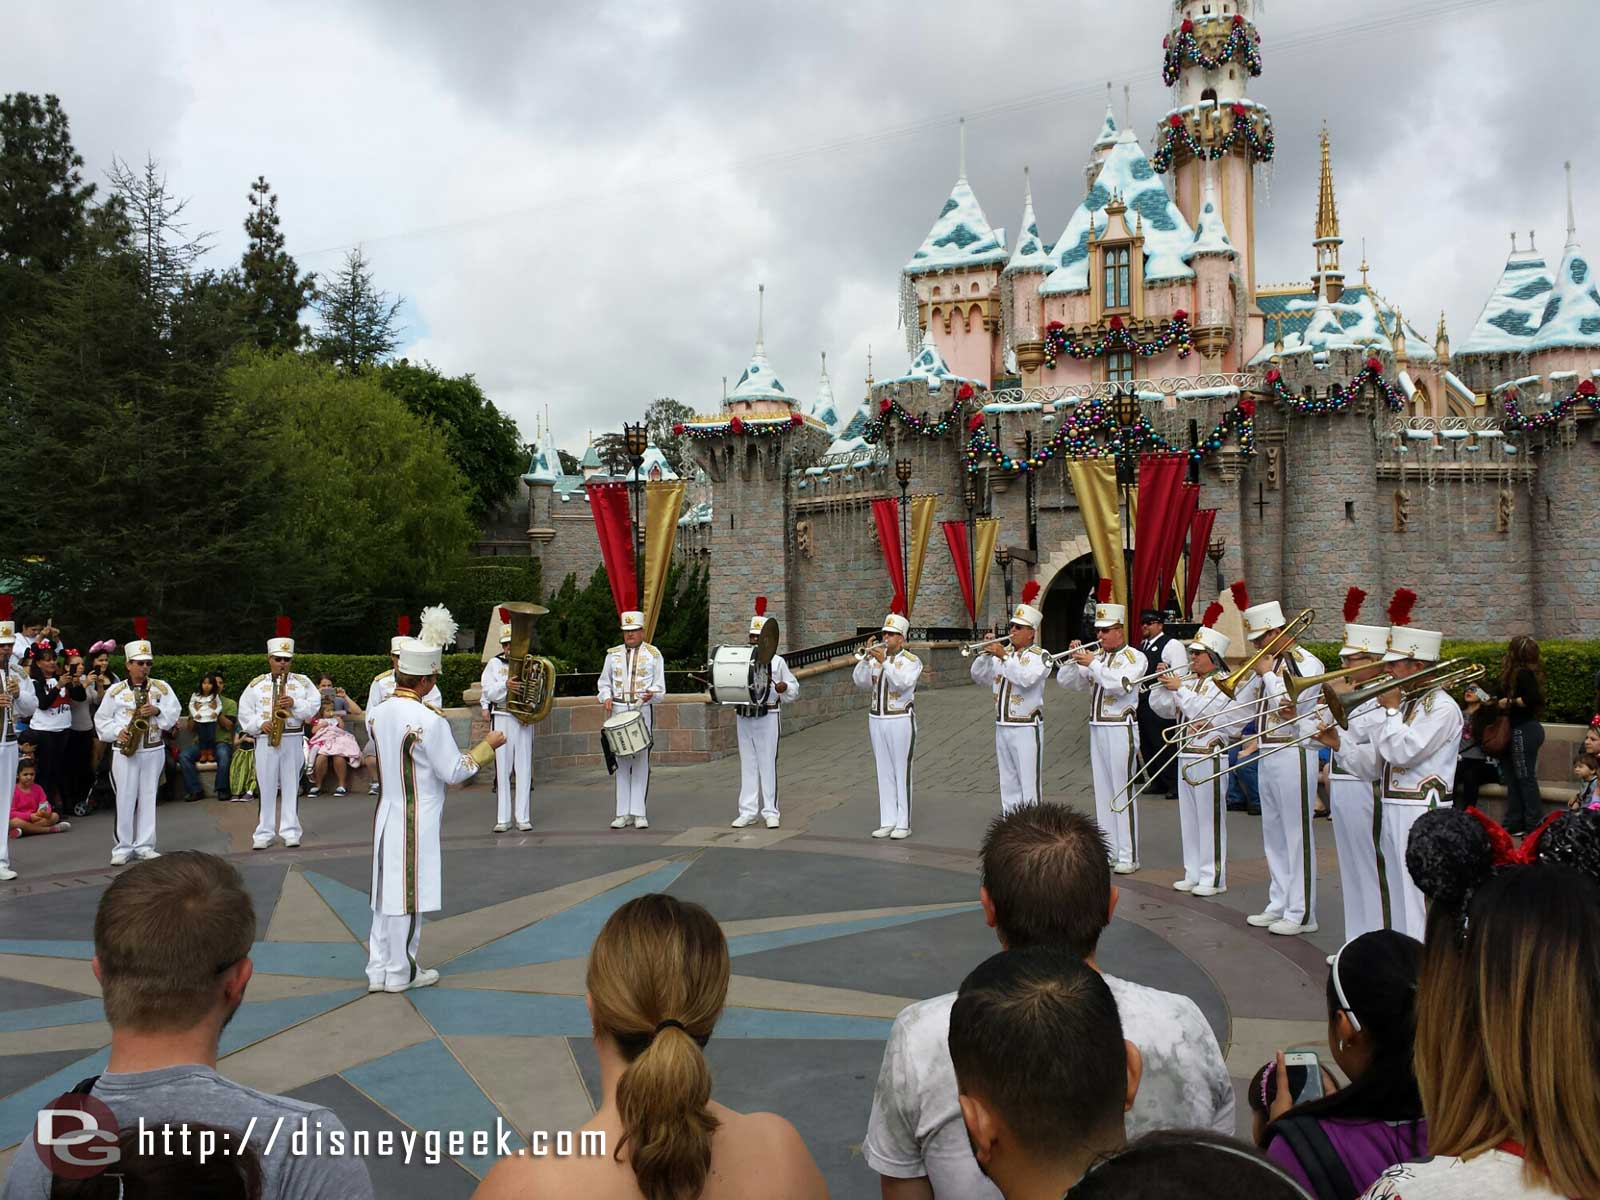 The Disneyland band performing in front of Sleeping Beauty Castle